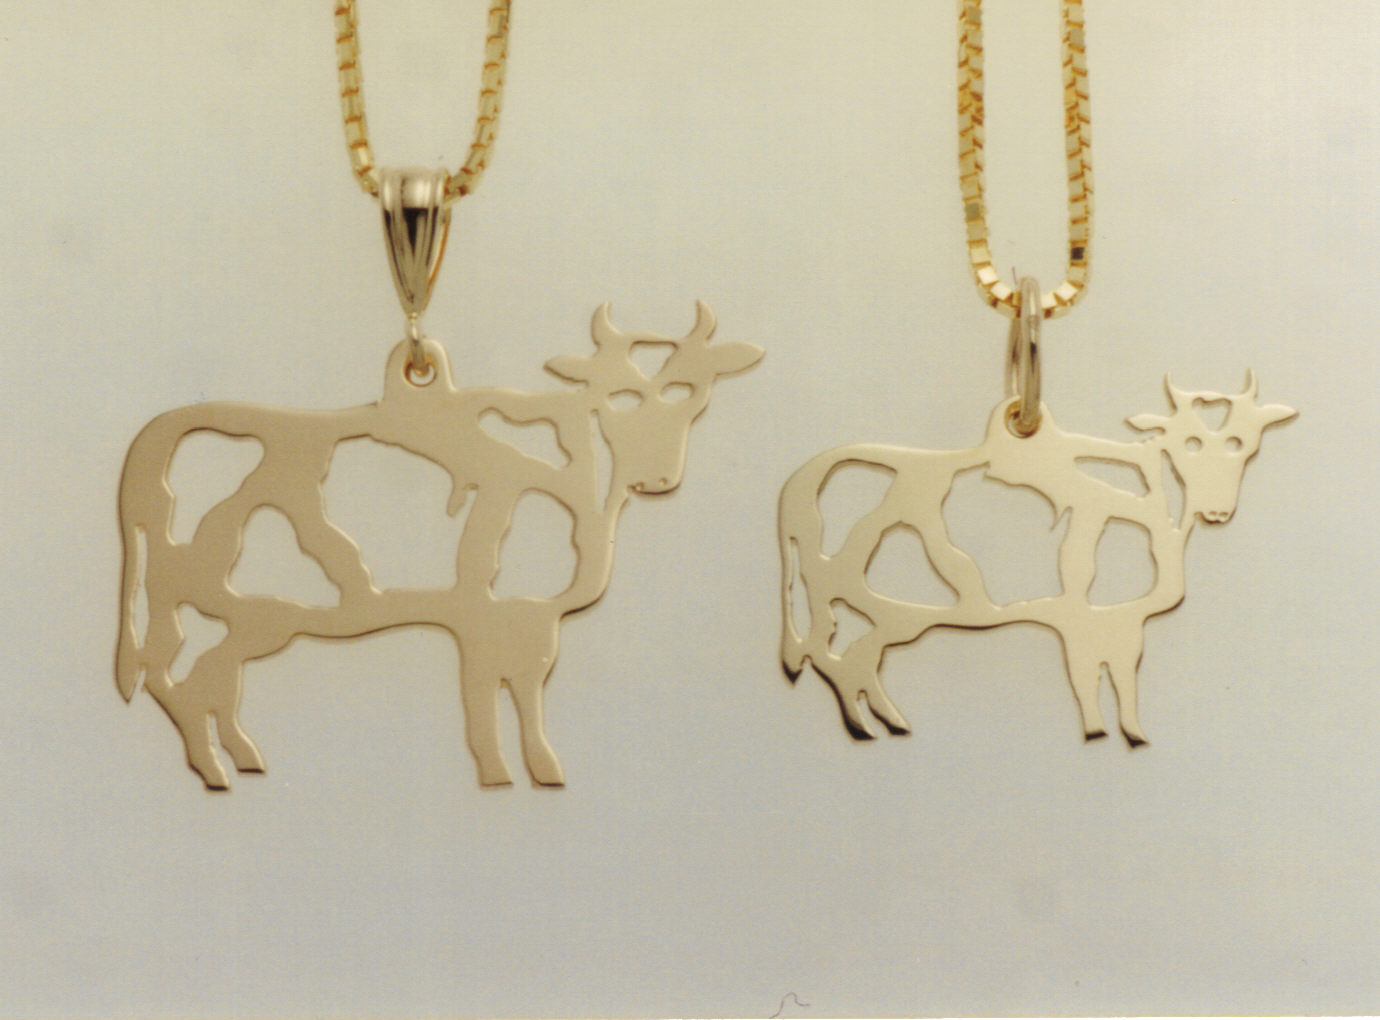 Wis-cow-sin Cow Pendant and Charm in 14K yellow gold